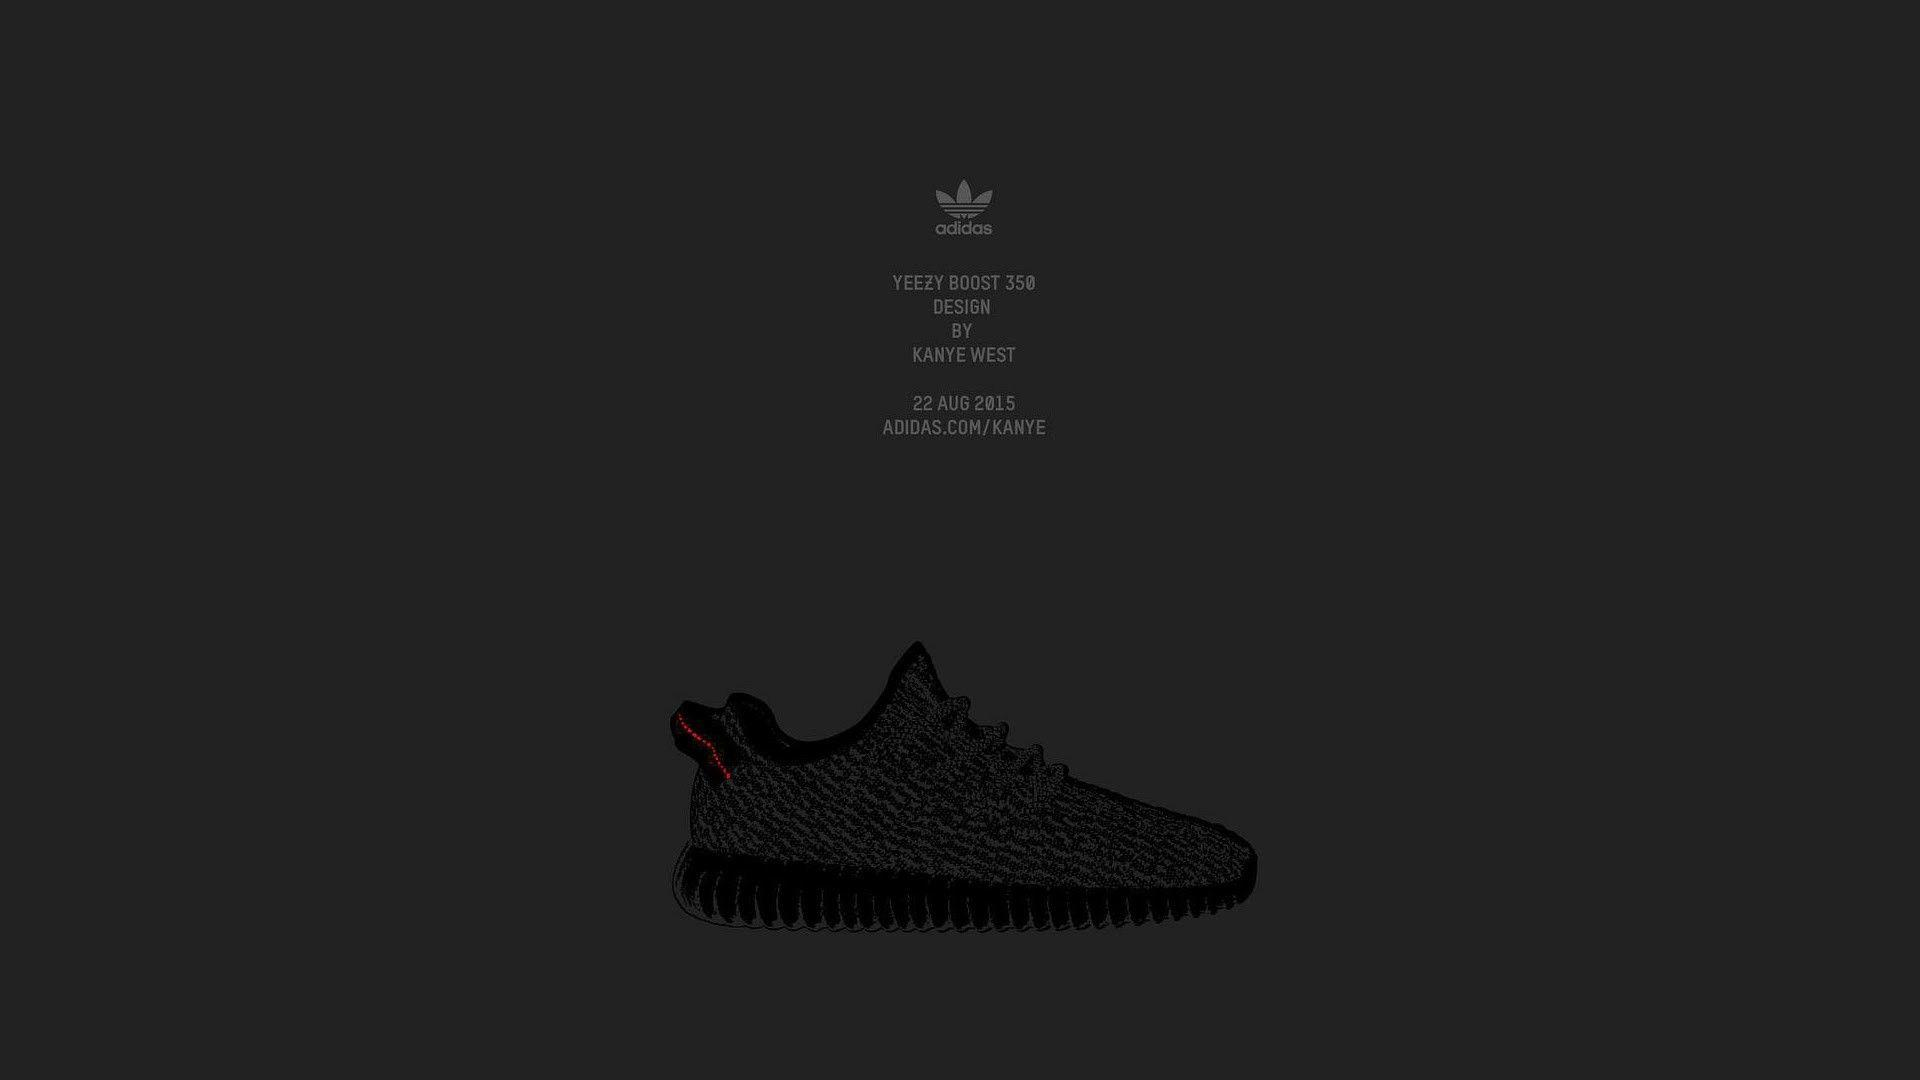 Wallpaper Adidas Yeezy Background